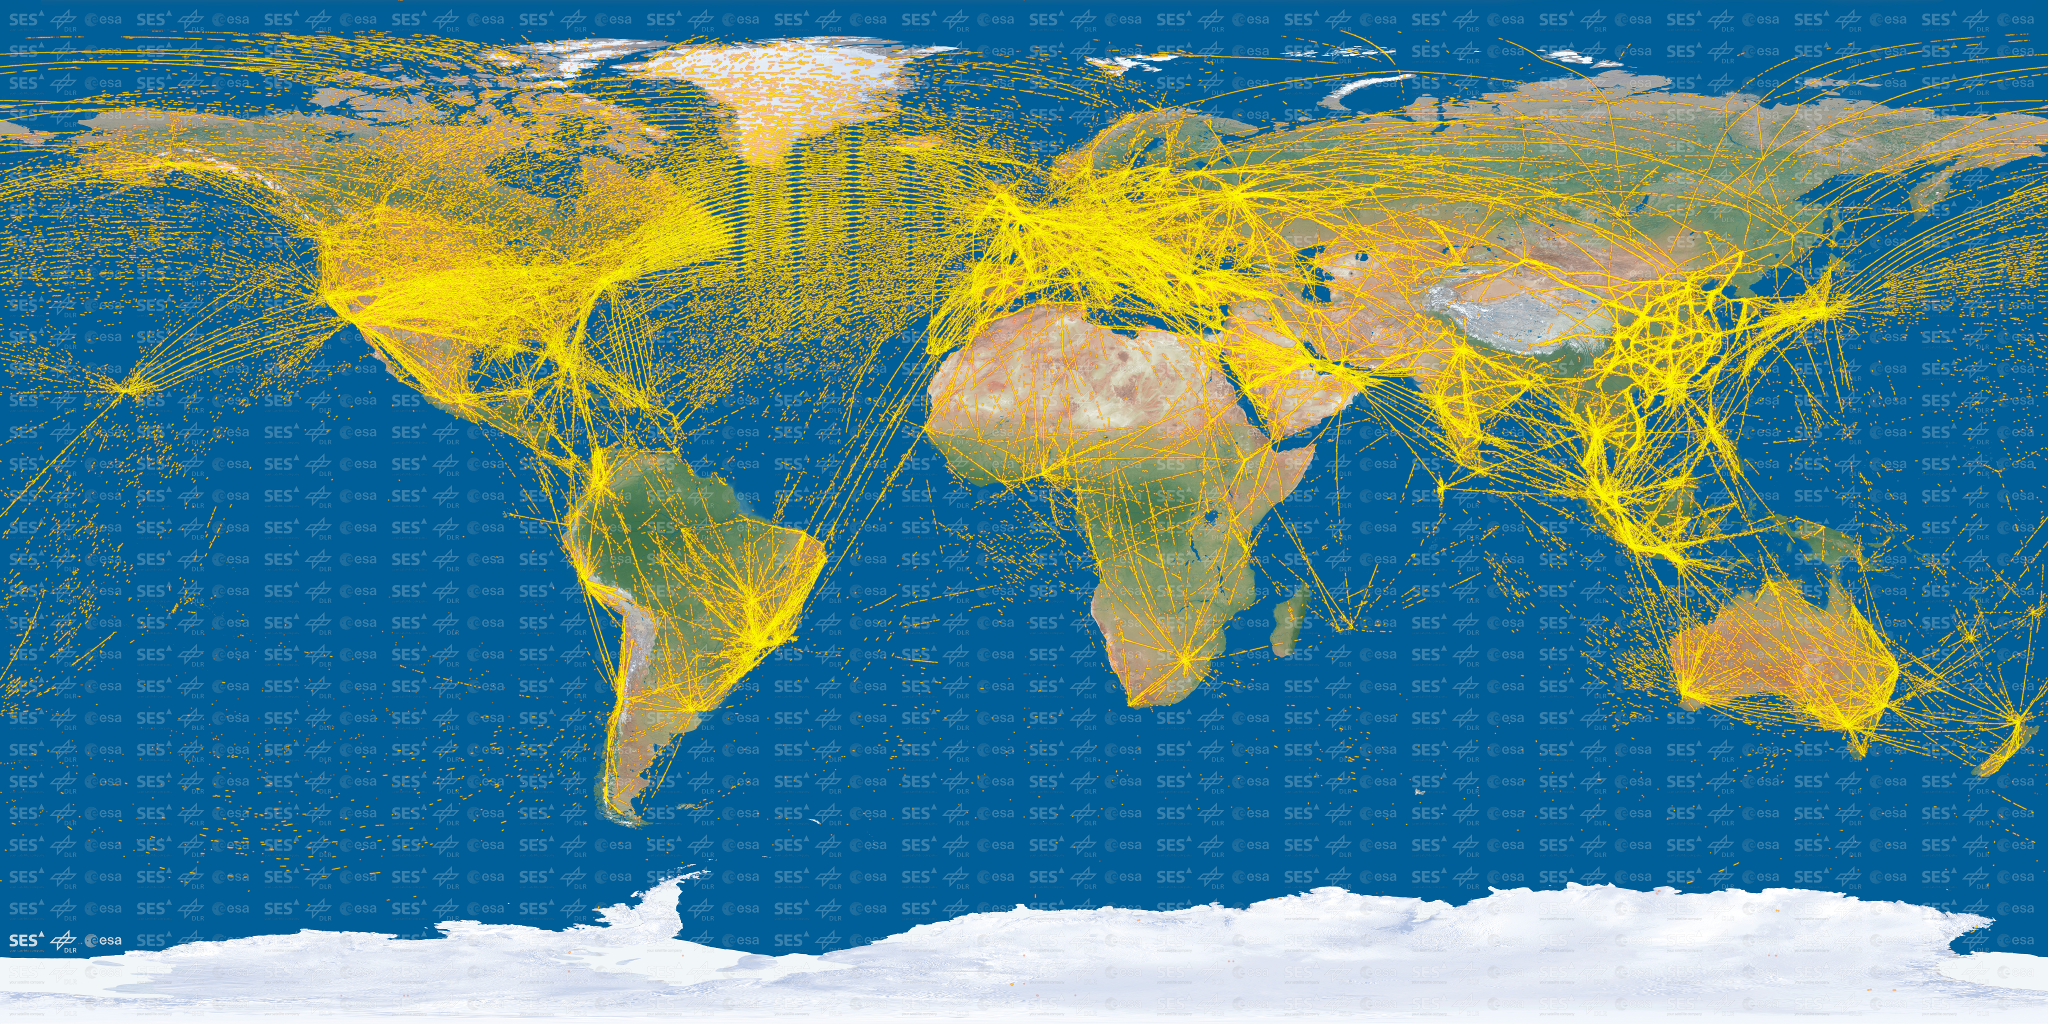 Proba v maps world air traffic from space gumiabroncs Image collections